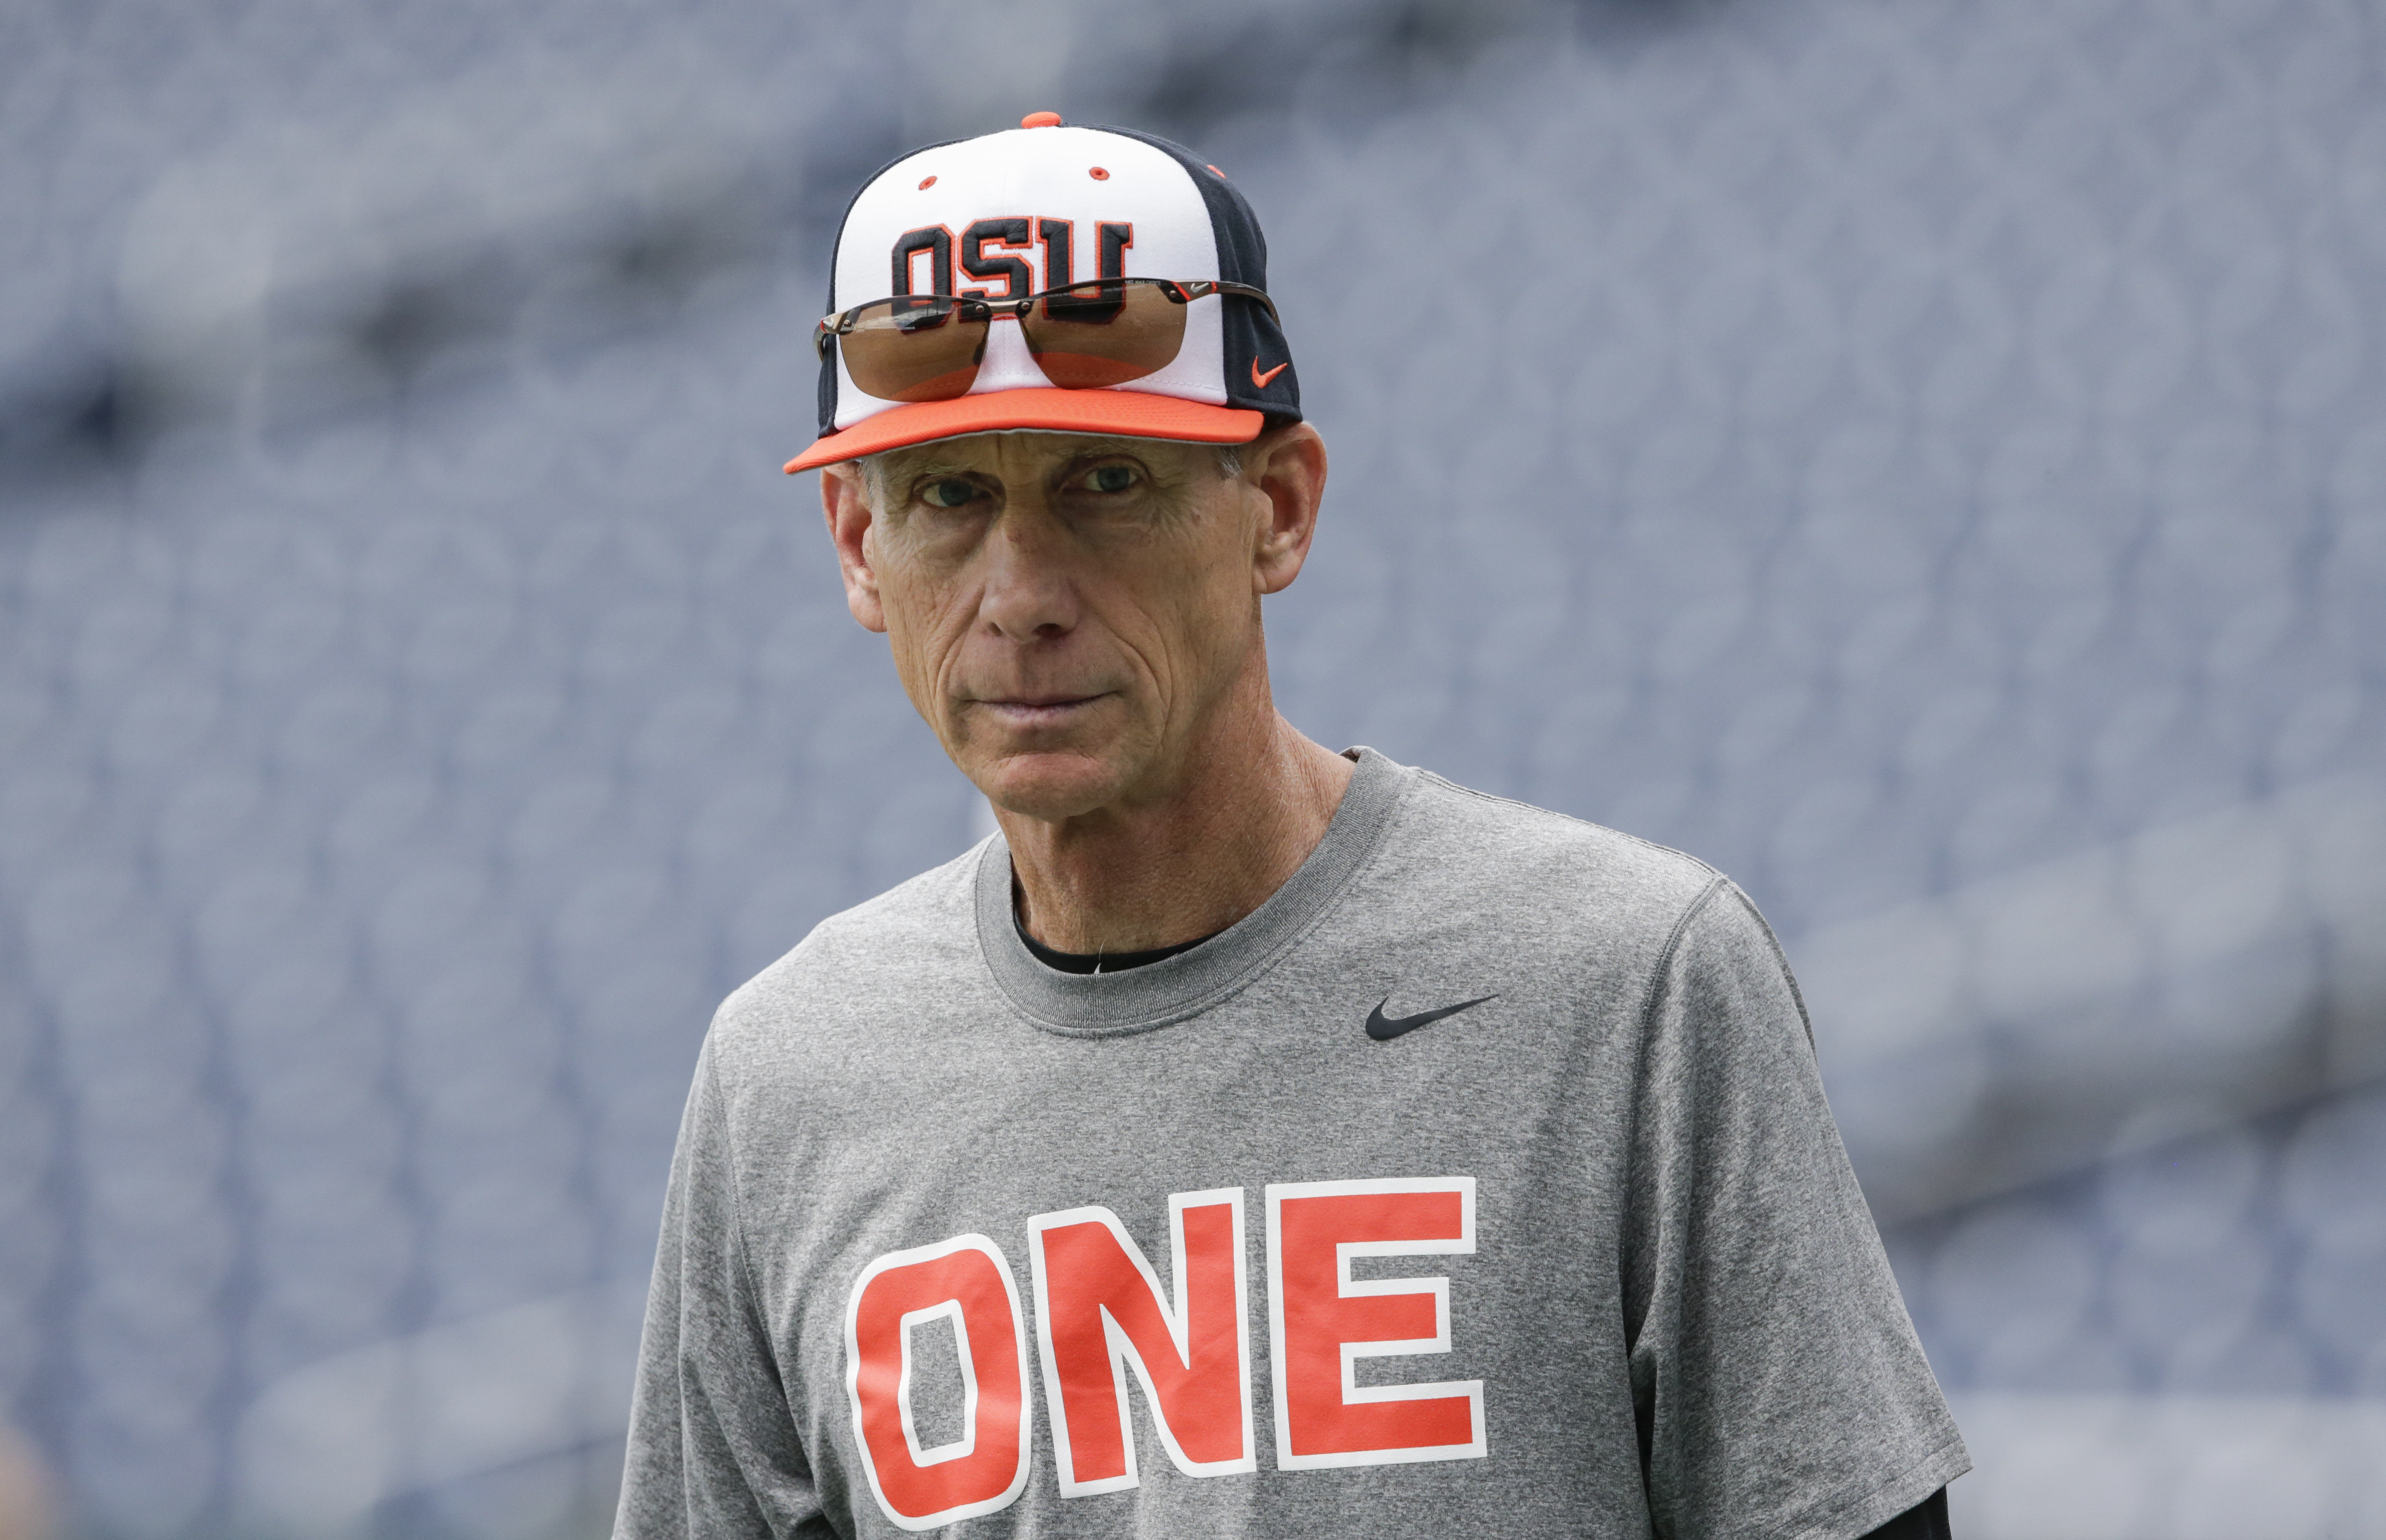 Oregon State coach Pat Casey follows team practice in Omaha, Neb., Friday, June 16, 2017. Oregon State is on the cusp of joining the company of the greatest college baseball teams of all time. At 54-4, the Beavers enter the College World Series with the fewest losses of any team since 1982. (AP Photo/Nati Harnik)